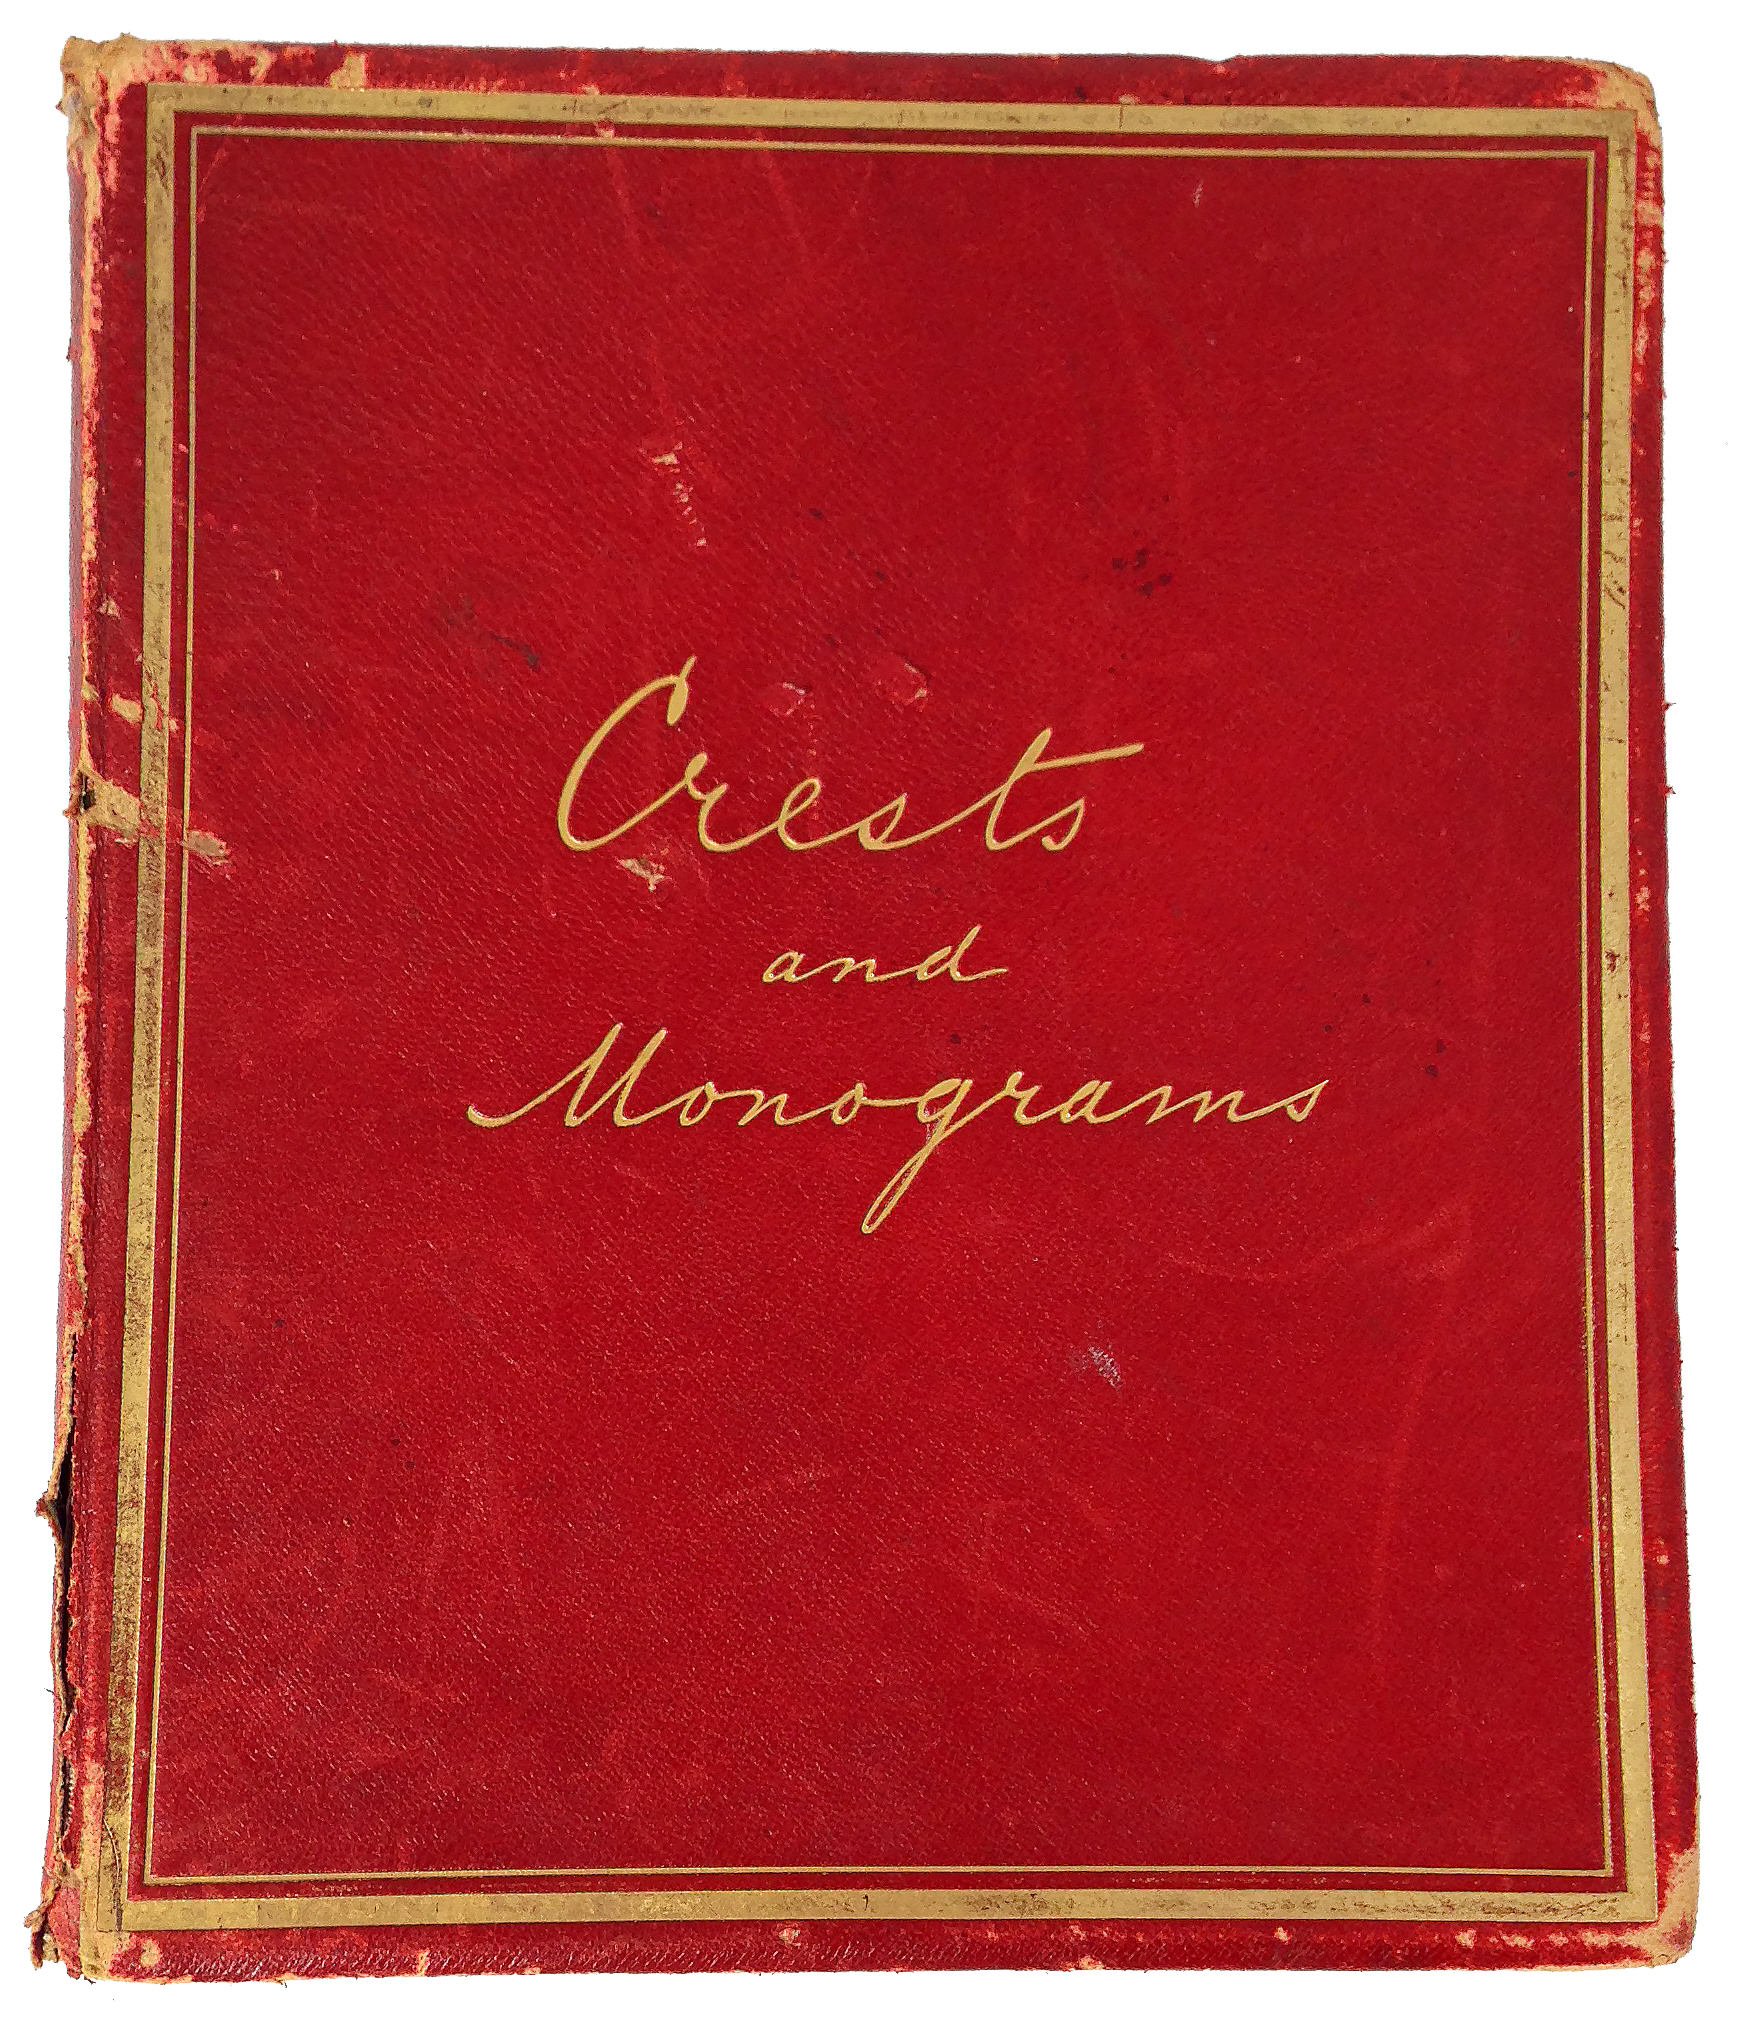 Enjoy these high quality featured ephemera: a Crests and Monograms Collectors' Book